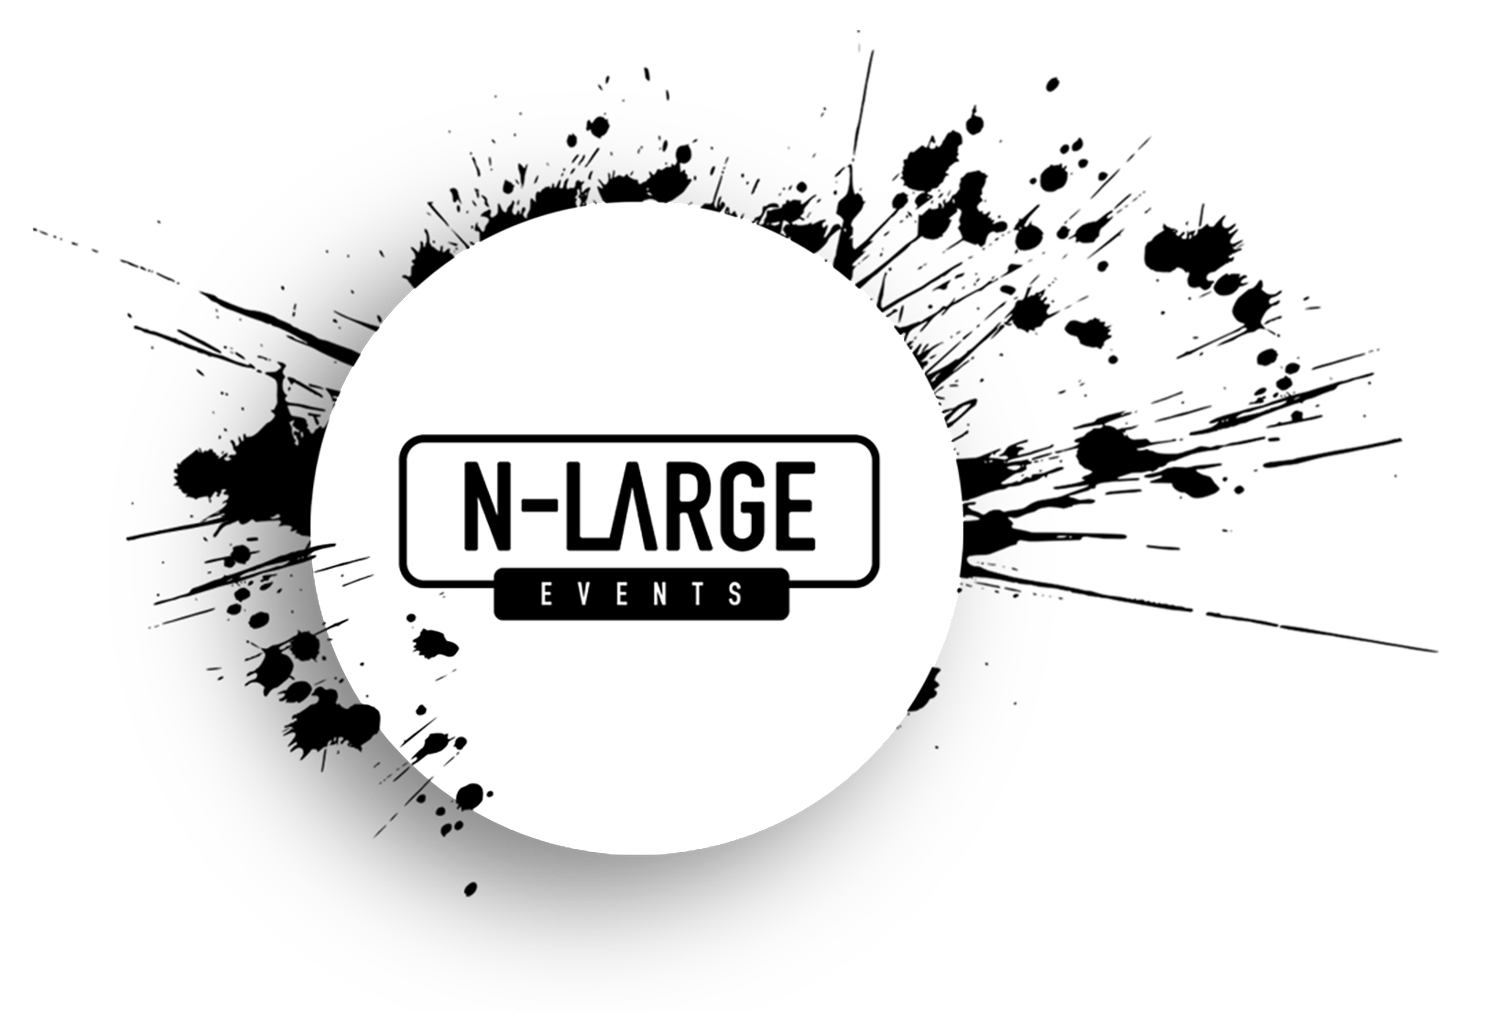 N_LARGE EVENTS